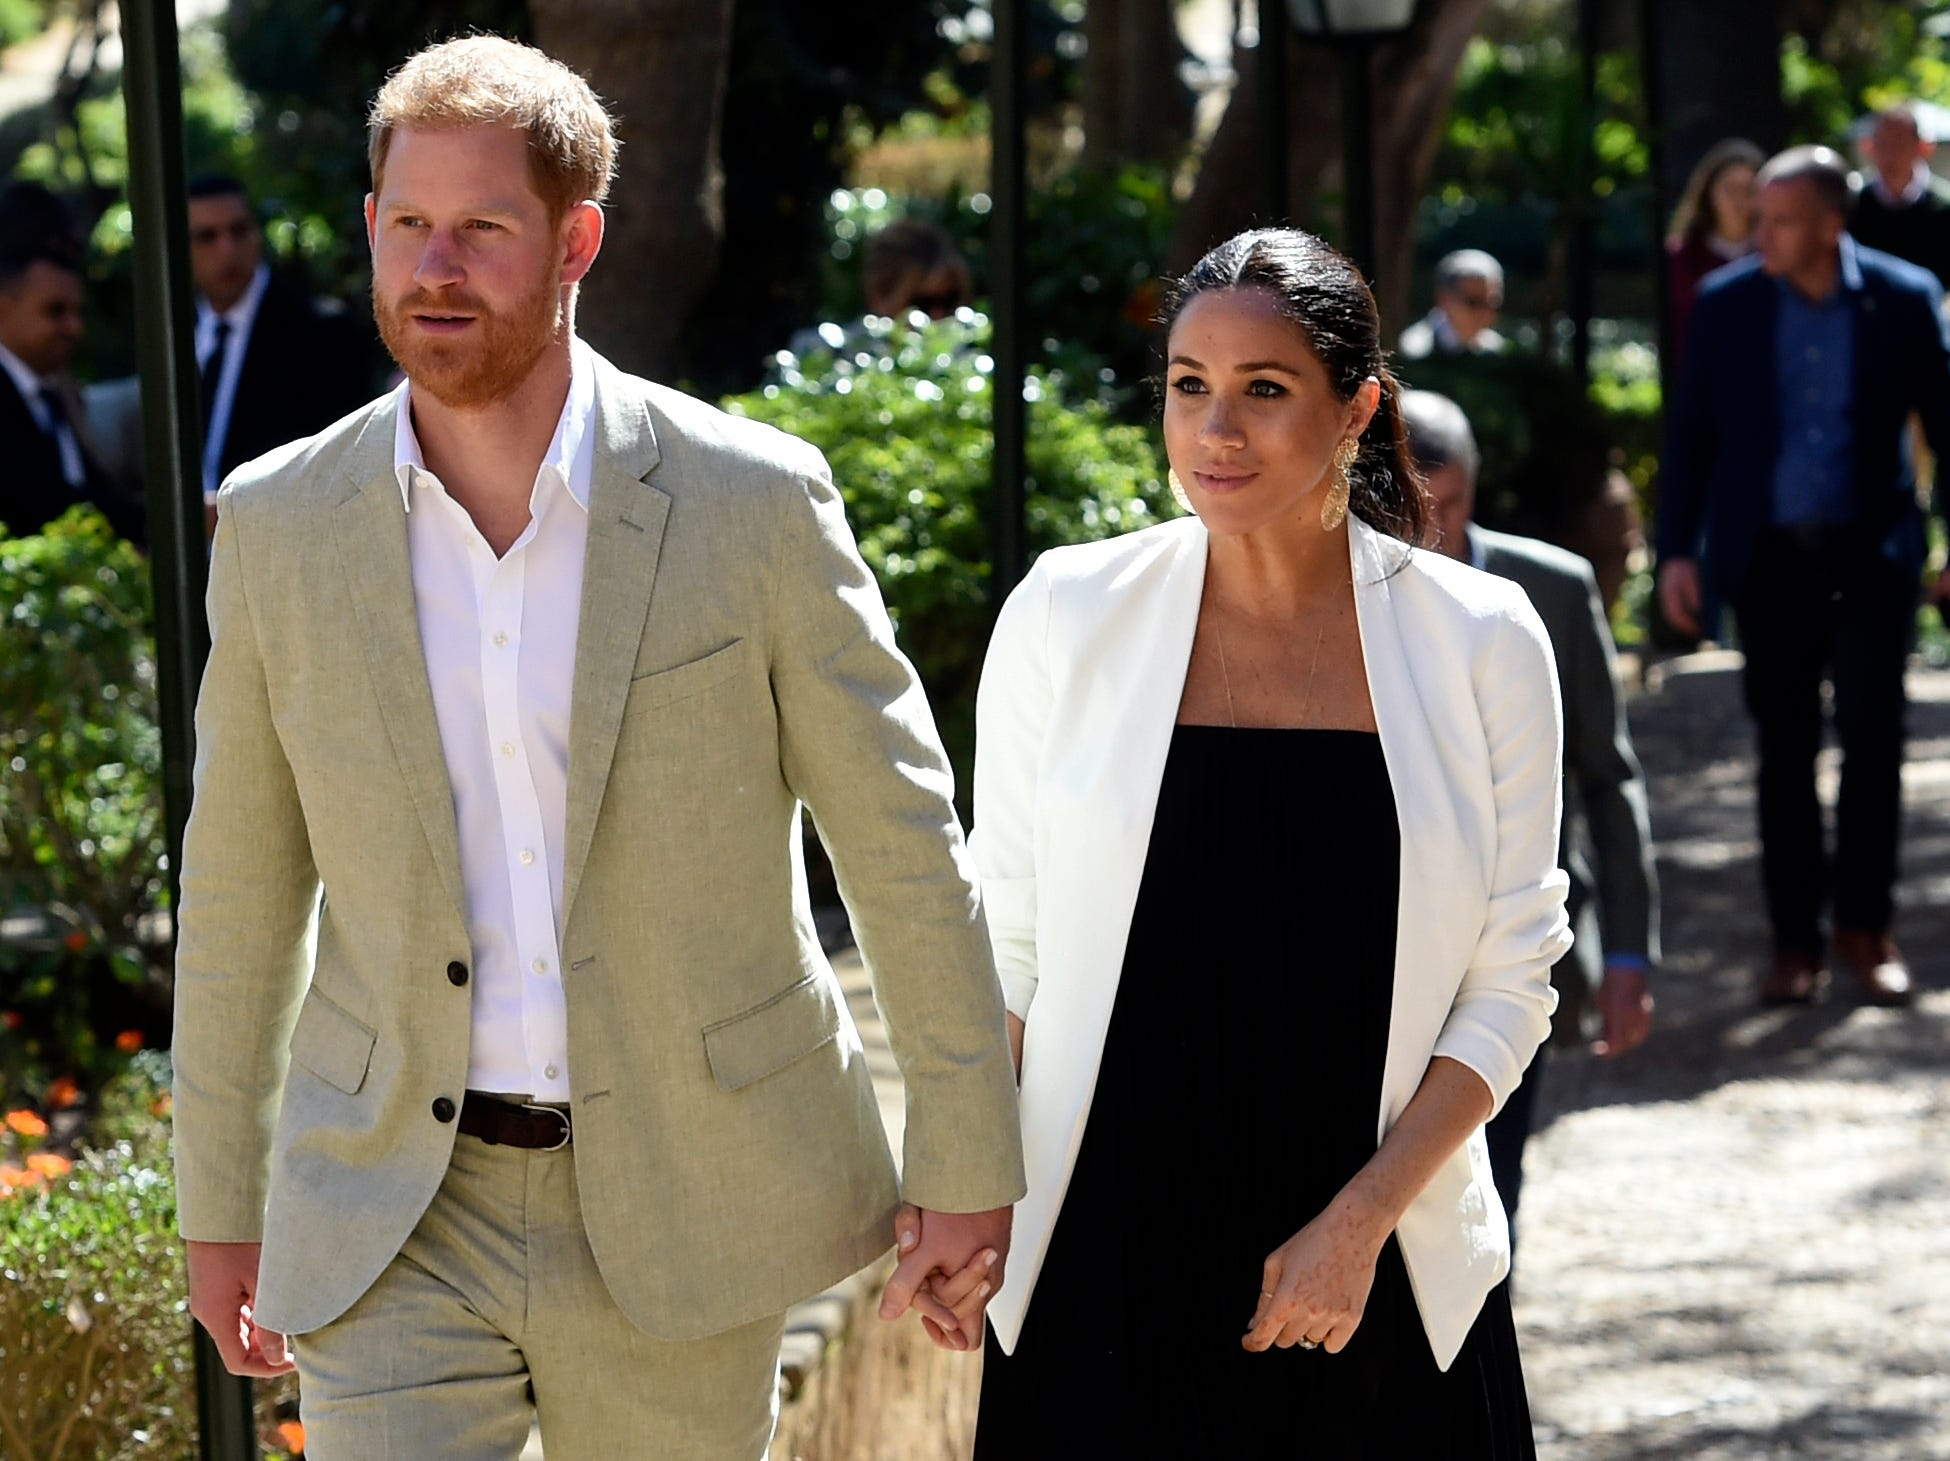 Britain's Prince Harry and Meghan, Duchess of Sussex visit the Andalusian Gardens in Rabat, Morocco, Monday, Feb. 25, 2019. The Duke and Duchess of Sussex are on a three day visit to the country.